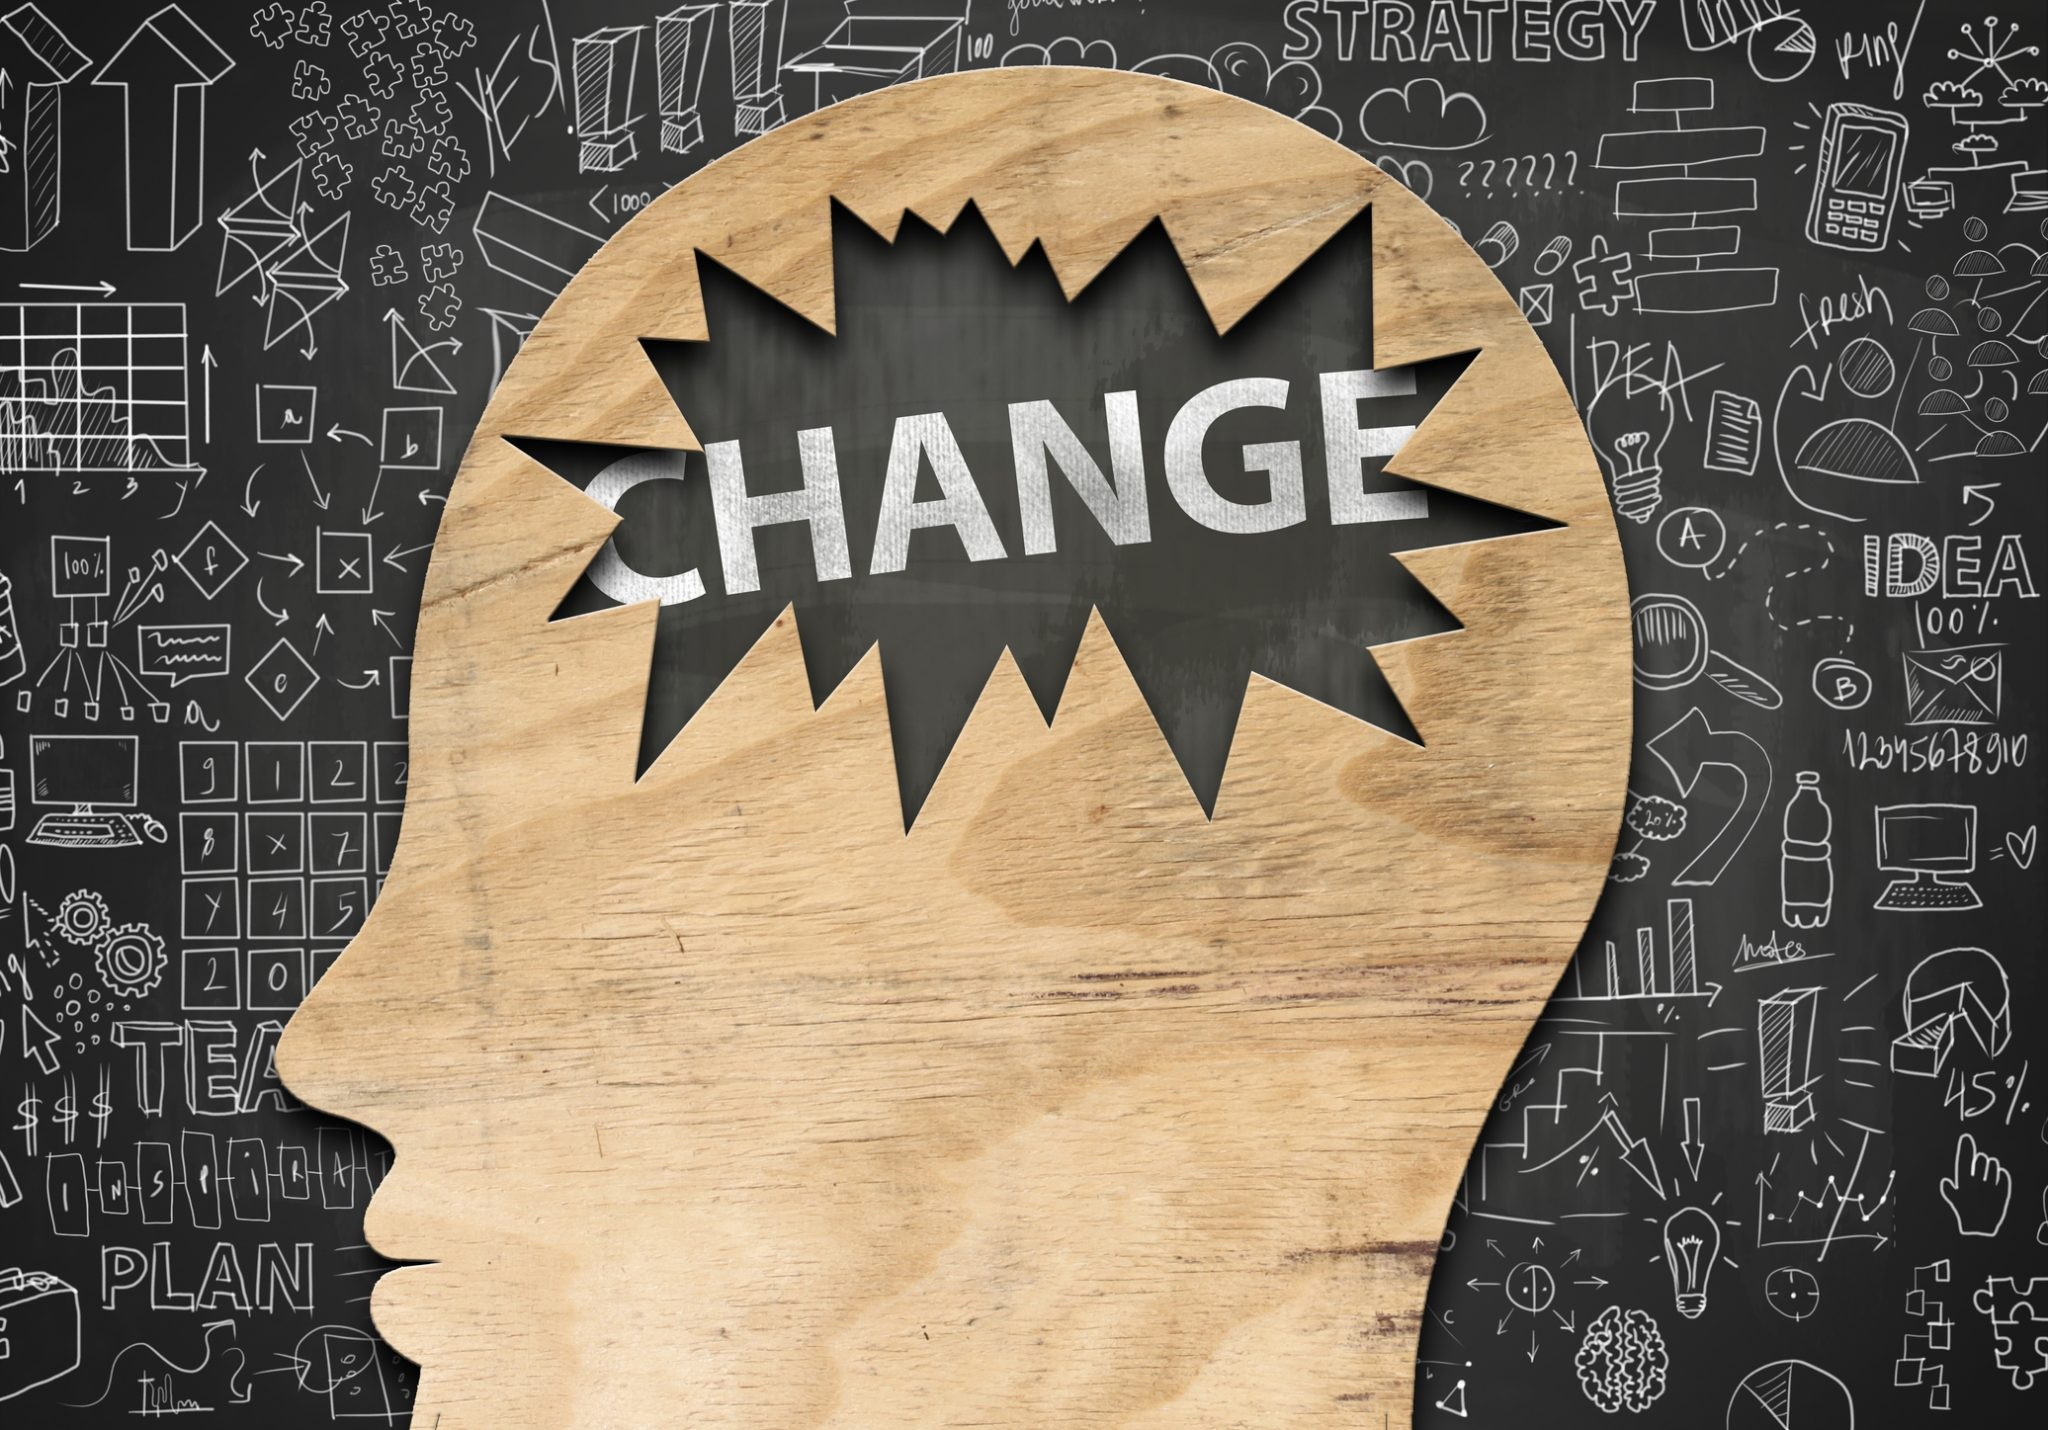 5 Tips for Embracing Change